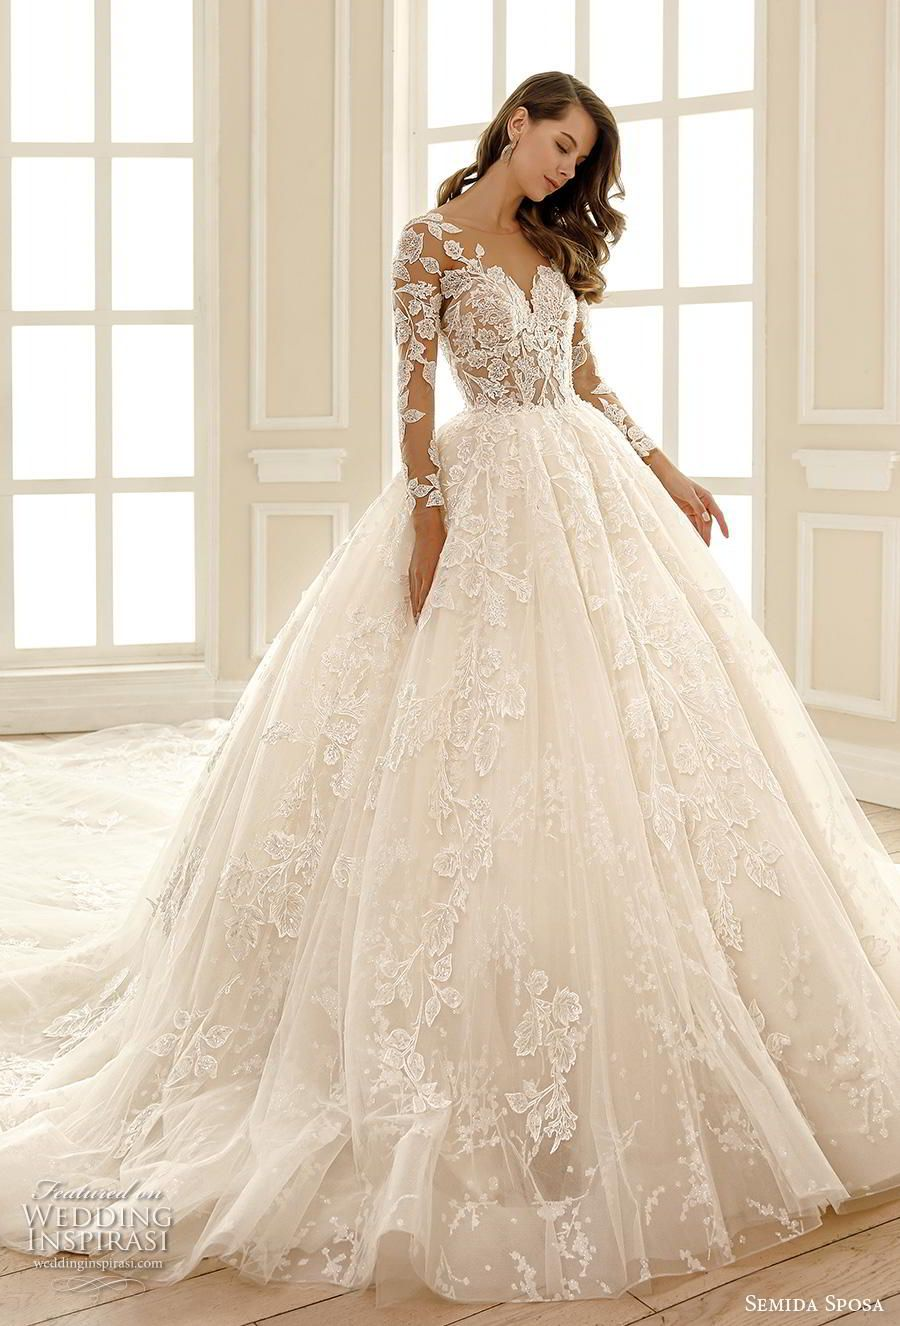 Semida Sposa 2020 Wedding Dresses Amazon Bridal Collection In